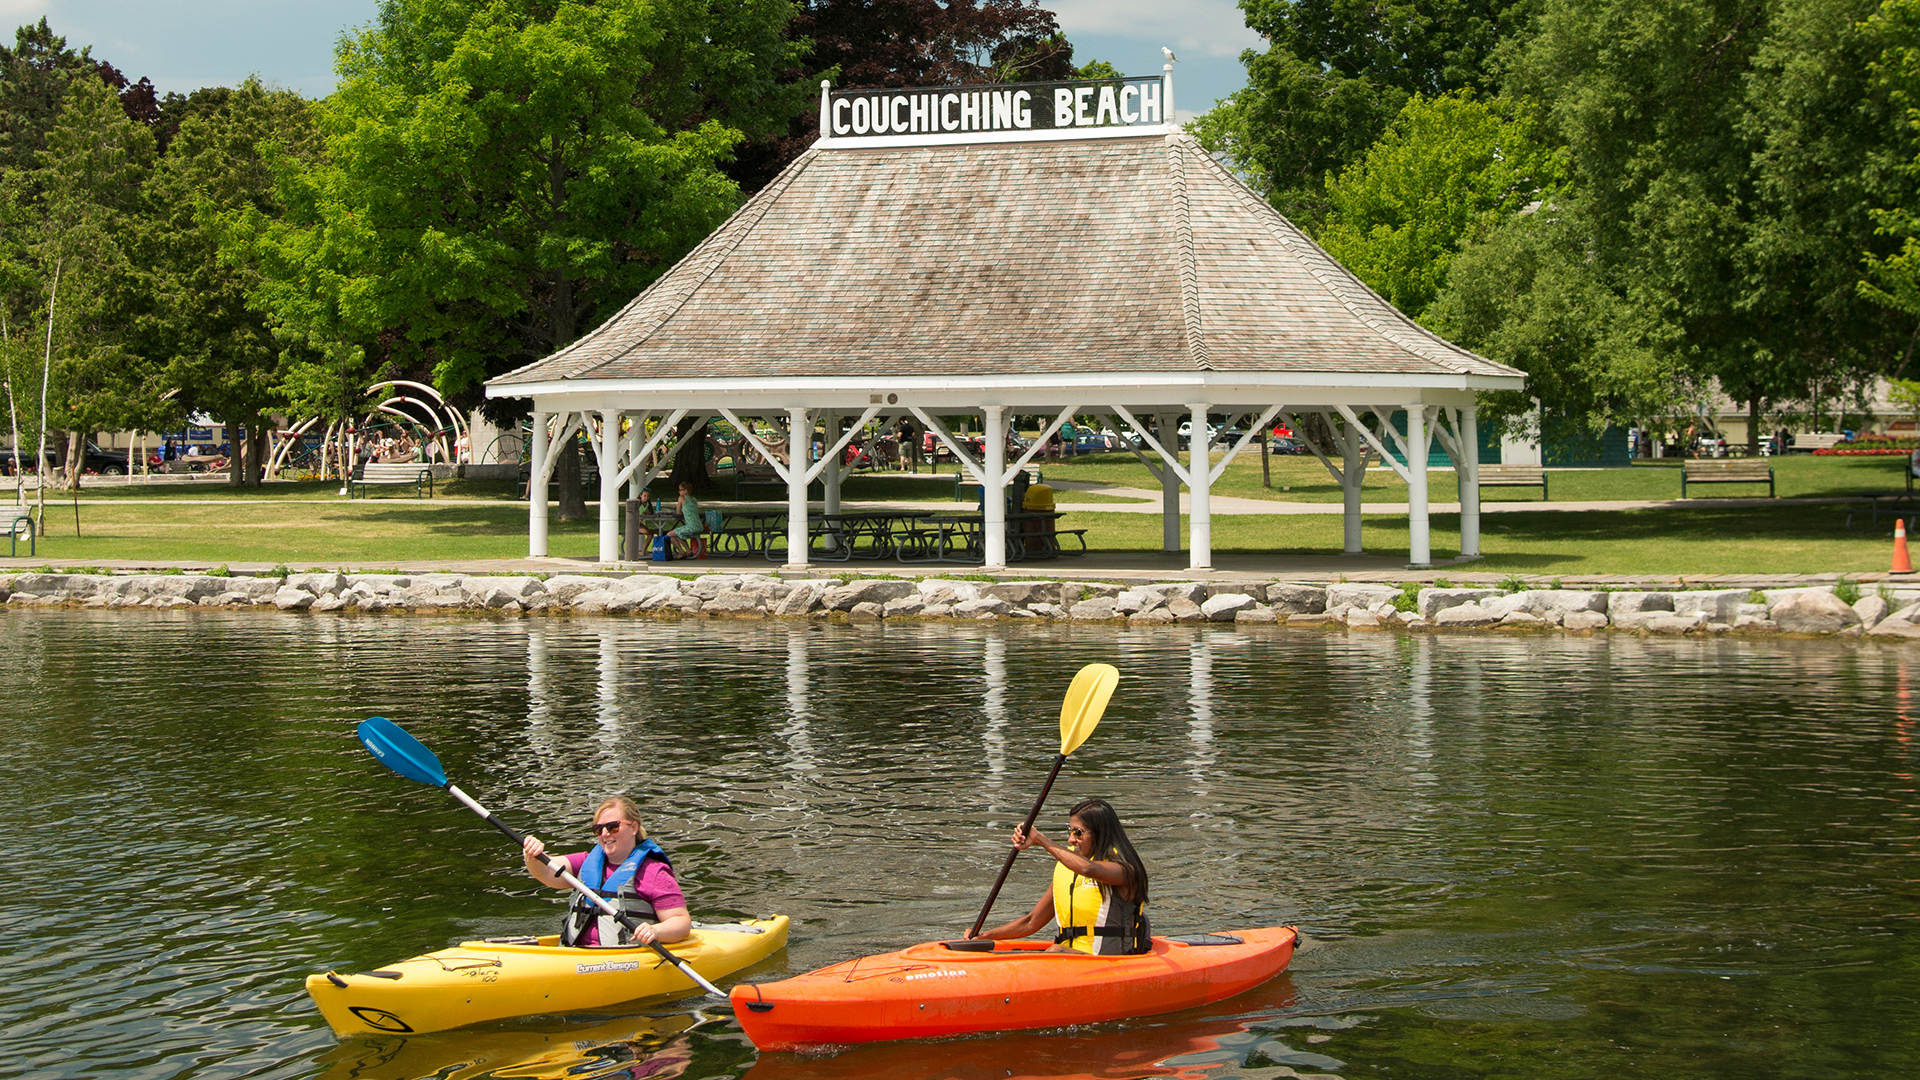 couchiching - Most Instagrammable Locations This Summer!